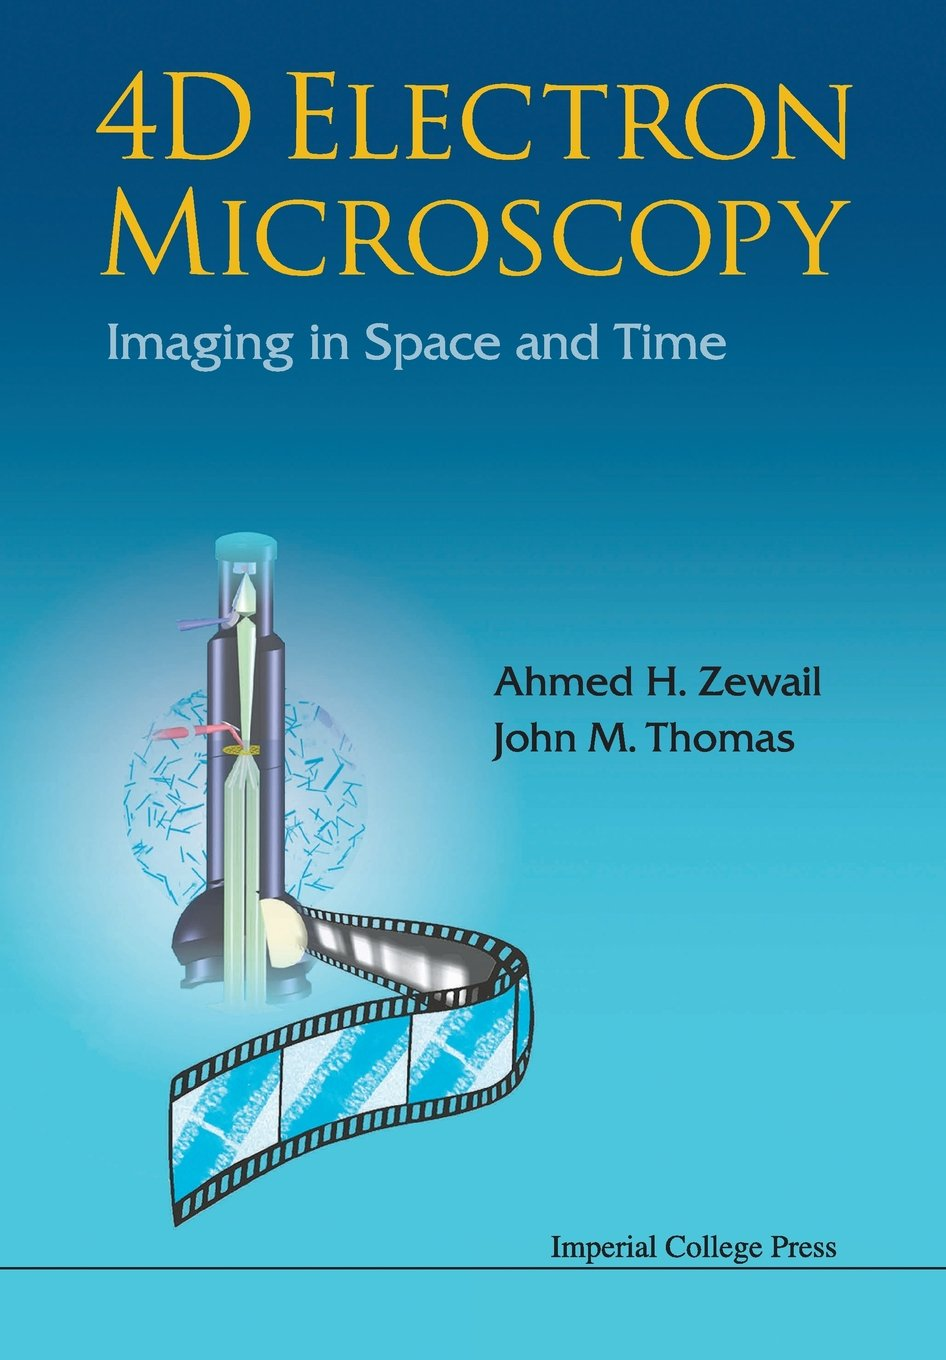 4D ELECTRON MICROSCOPY  IMAGING IN SPACE AND TIME